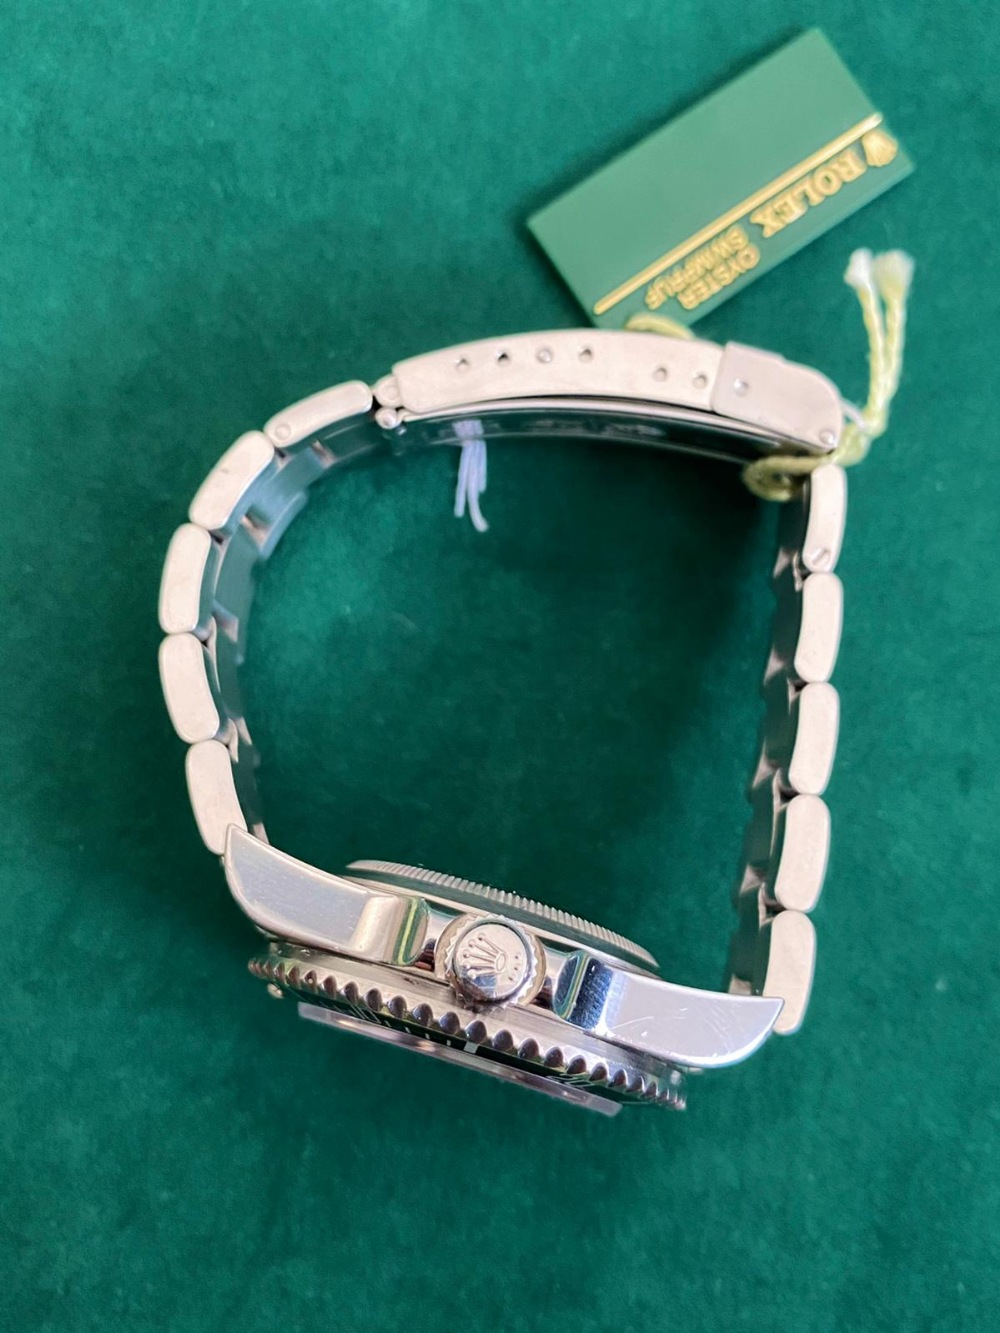 A gent's stainless steel Rolex Oyster Perpetual Date Sea-Dweller bracelet wrist watch, 2004 F Series - Image 2 of 4